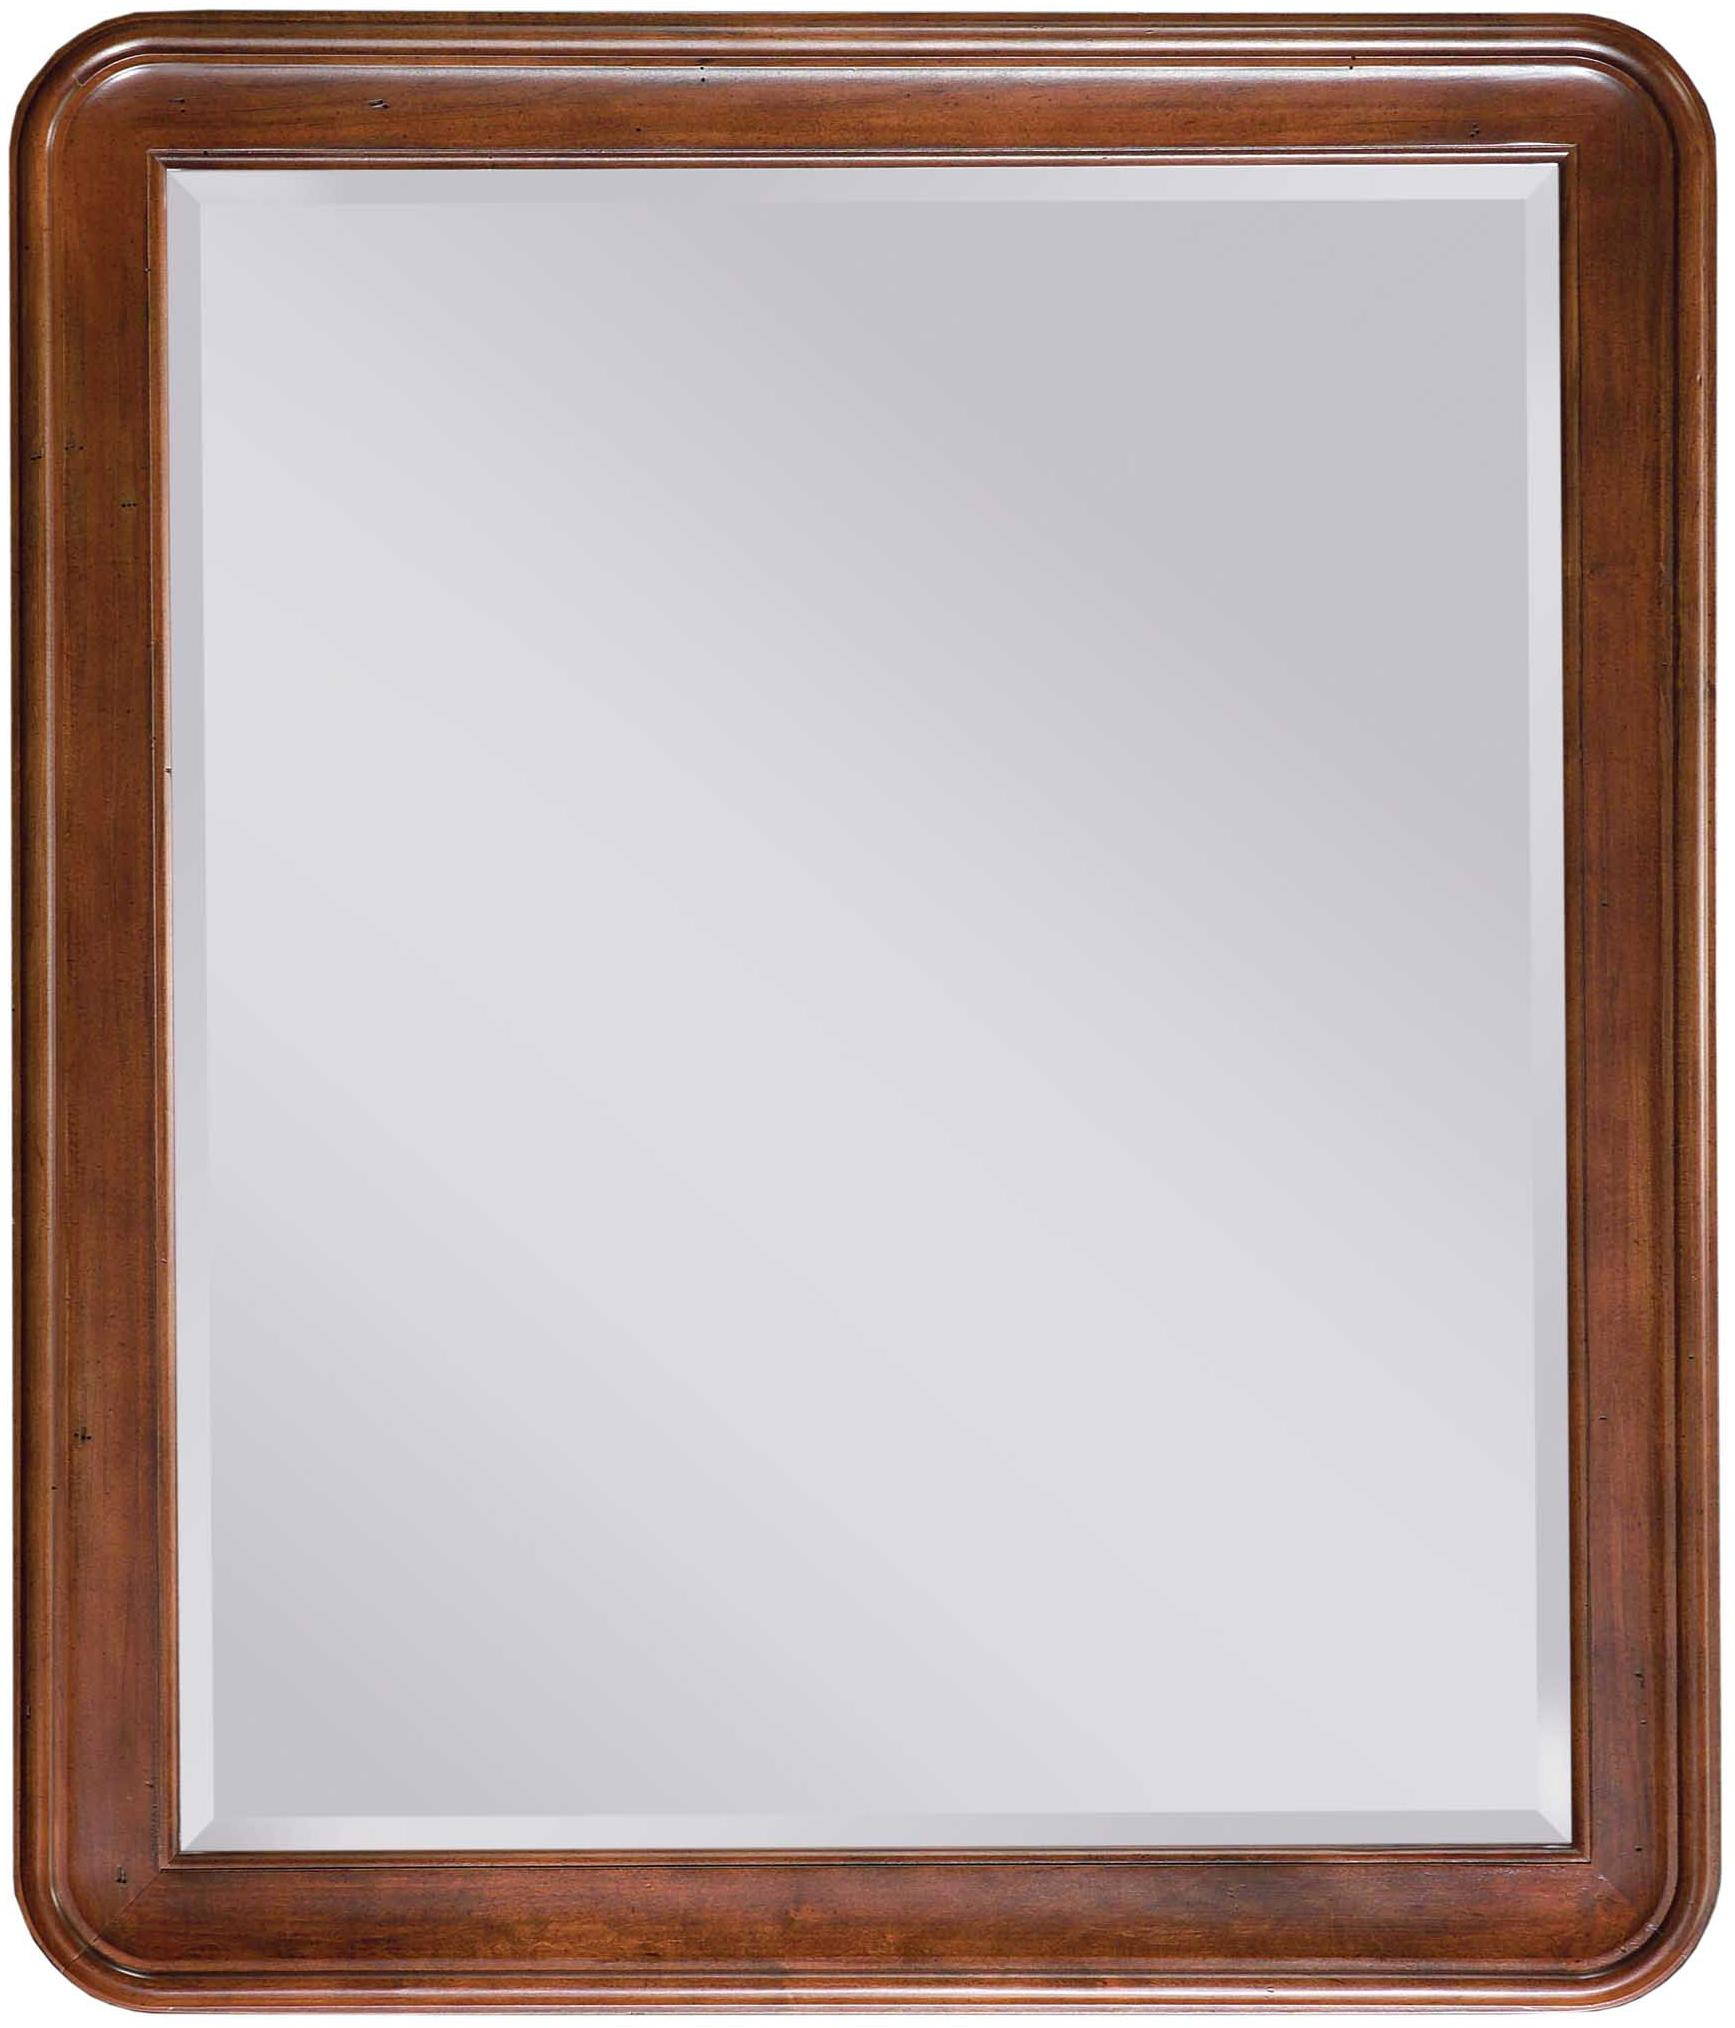 Morris Home Furnishings Canfield Canfield Vertical Mirror - Item Number: 53112